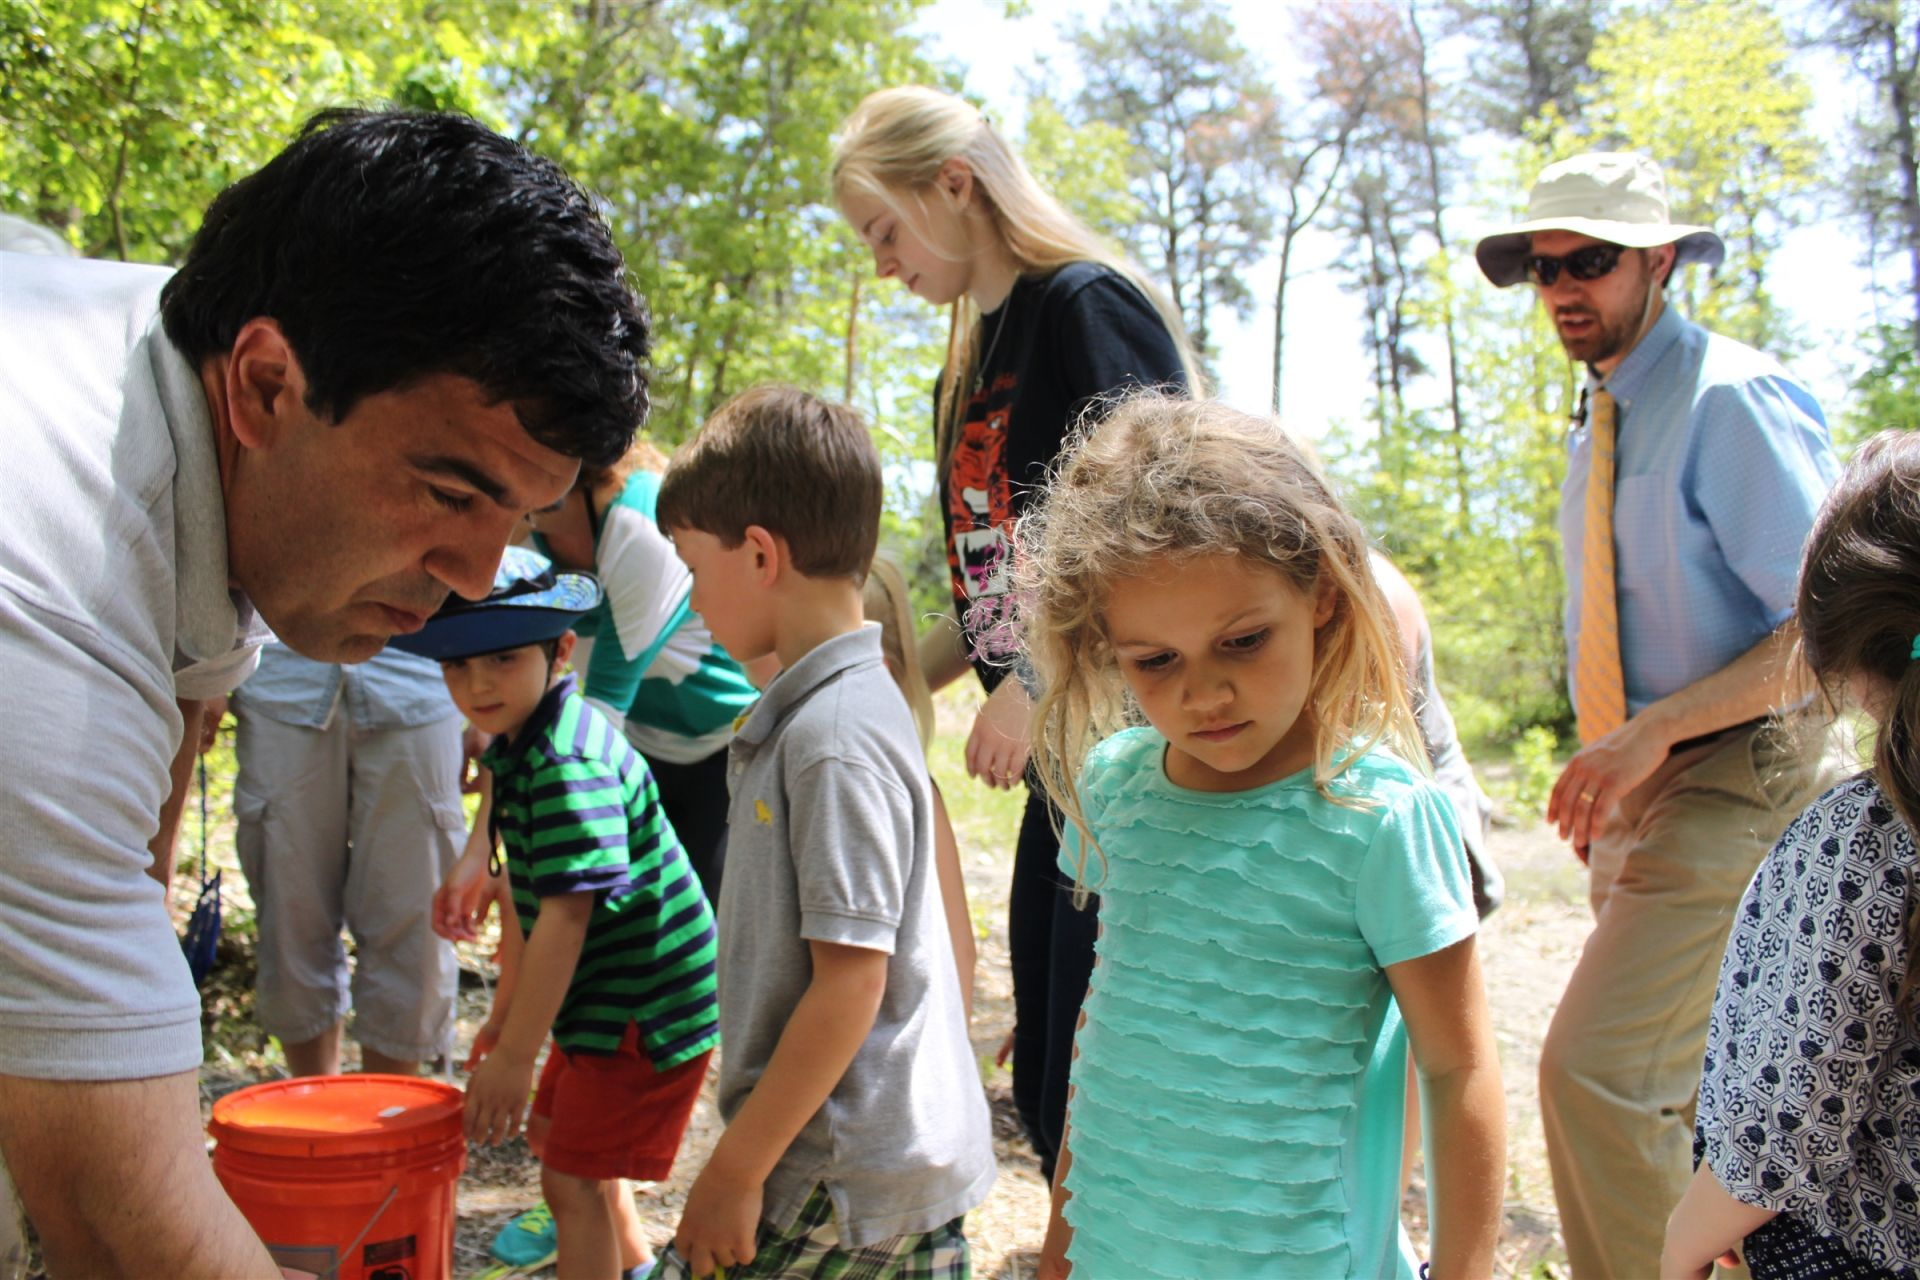 Upper School Environmental Club members mentor lower school students in nature projects.